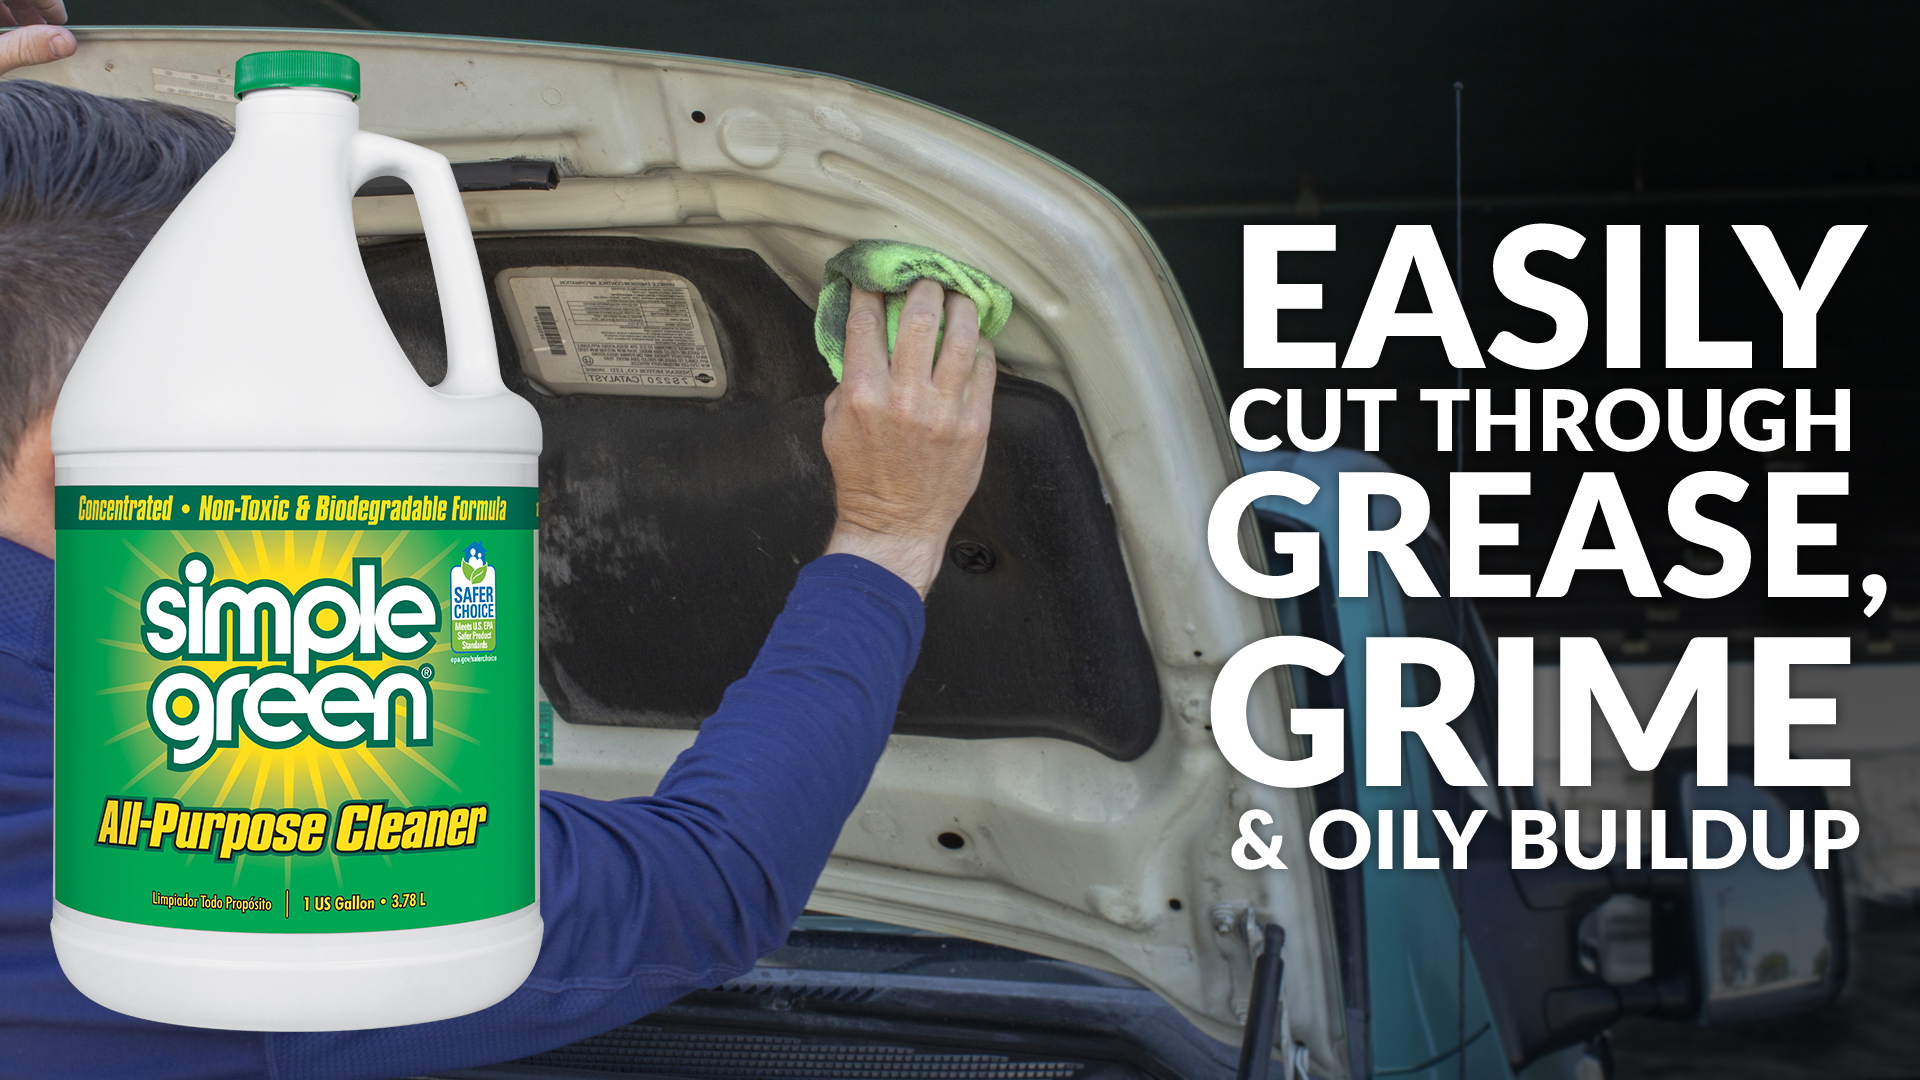 Easily cut through grease, grim, and oily buildup